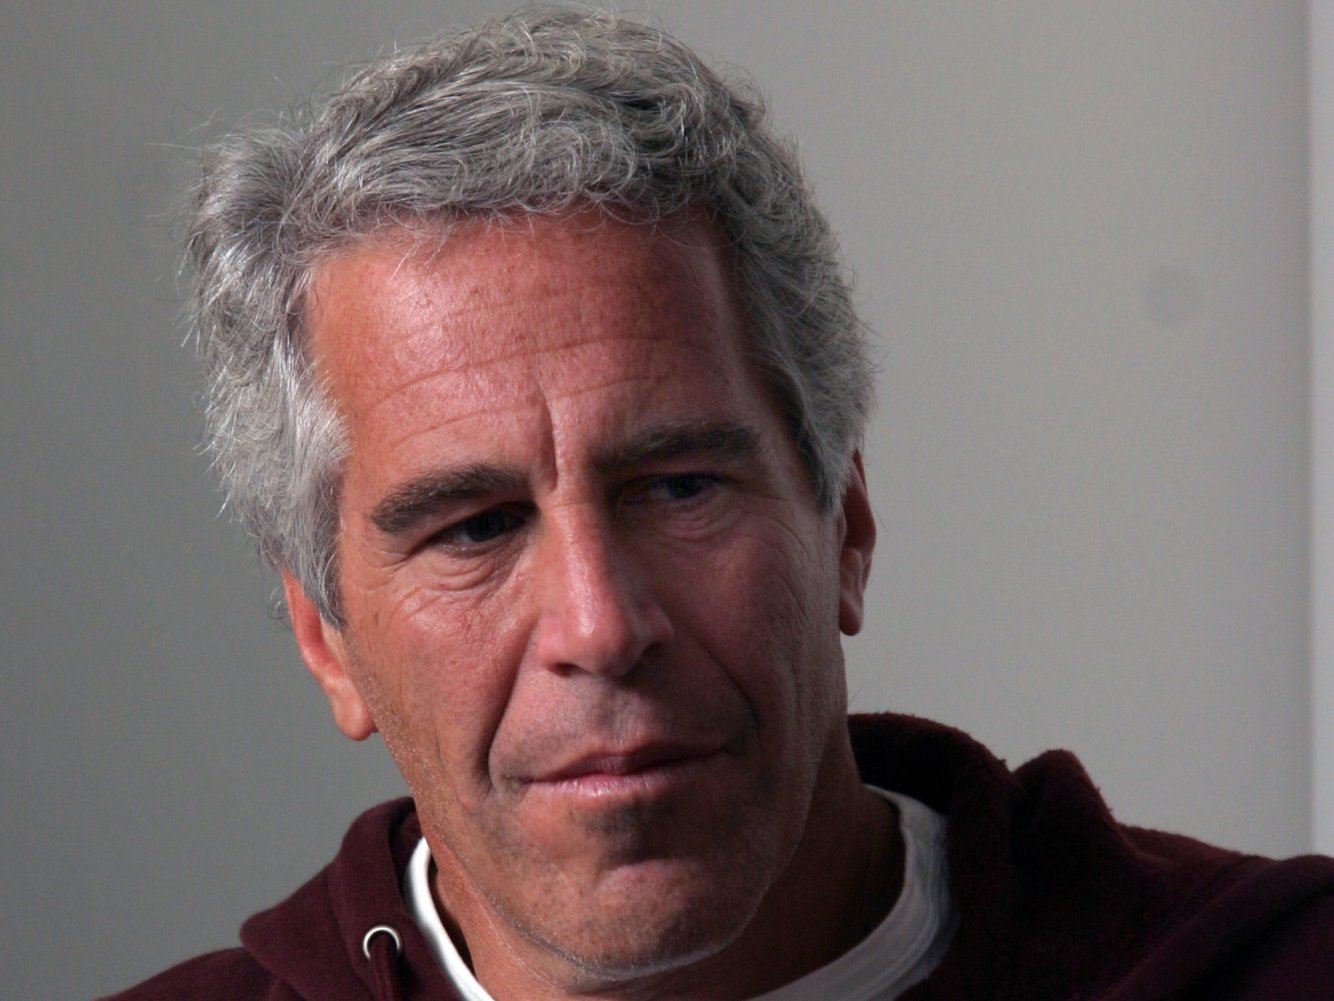 Police footage from 2005 reportedly shows Jeffrey Epstein's Palm Beach mansion littered with massage chairs and nude pictures of young women